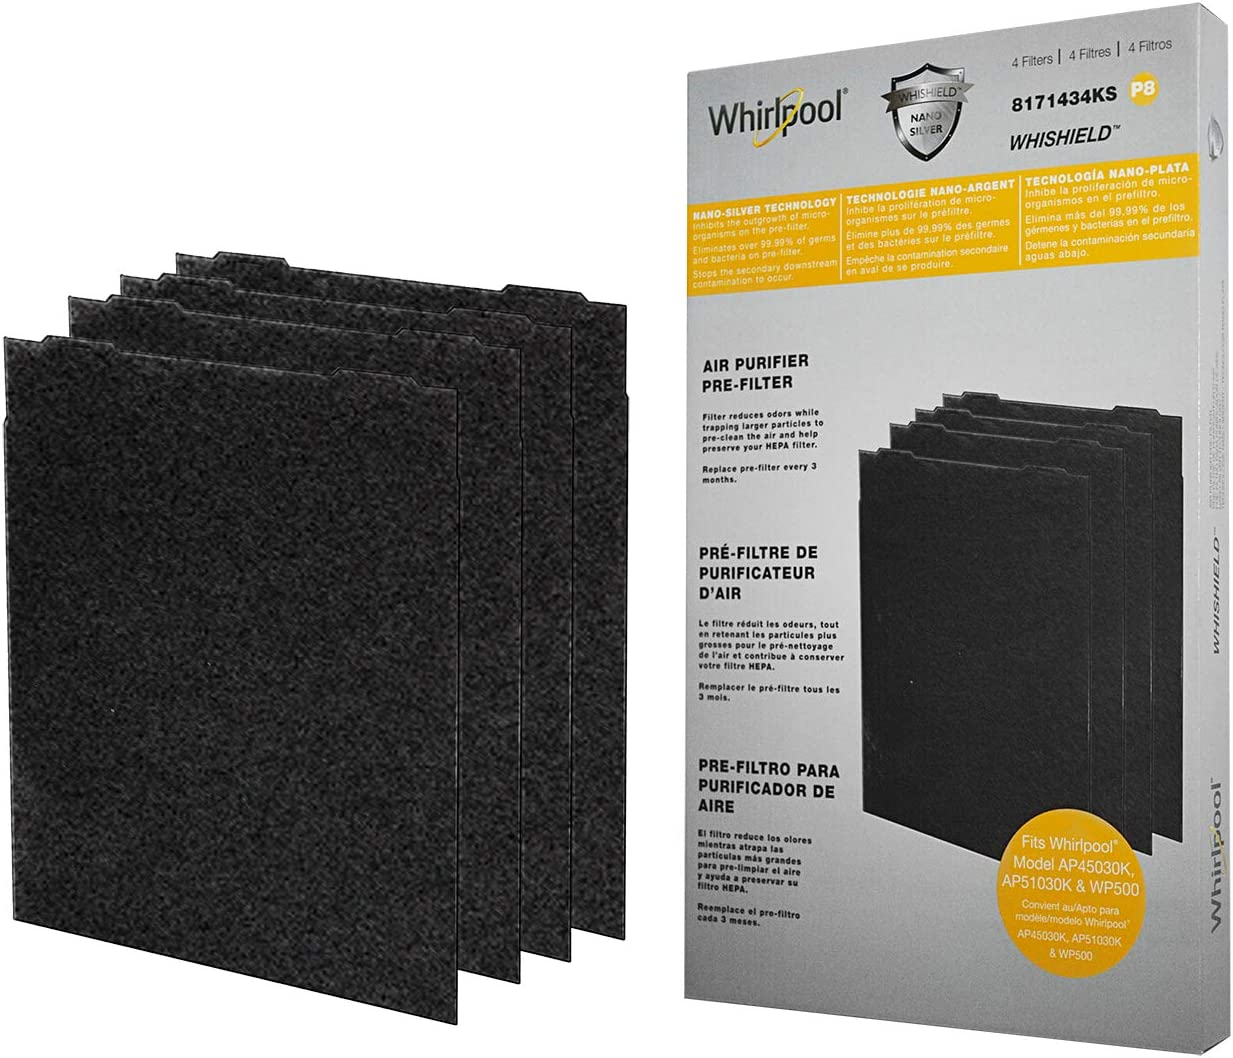 Whirlpool 8171434KS Genuine Charcoal Pre-Filter - Whishield Anti-Microbial Activated - Replacement Fit for Air Purifier AP51030K, AP45030K, APR45130L and WP500, Large - 4 Pack